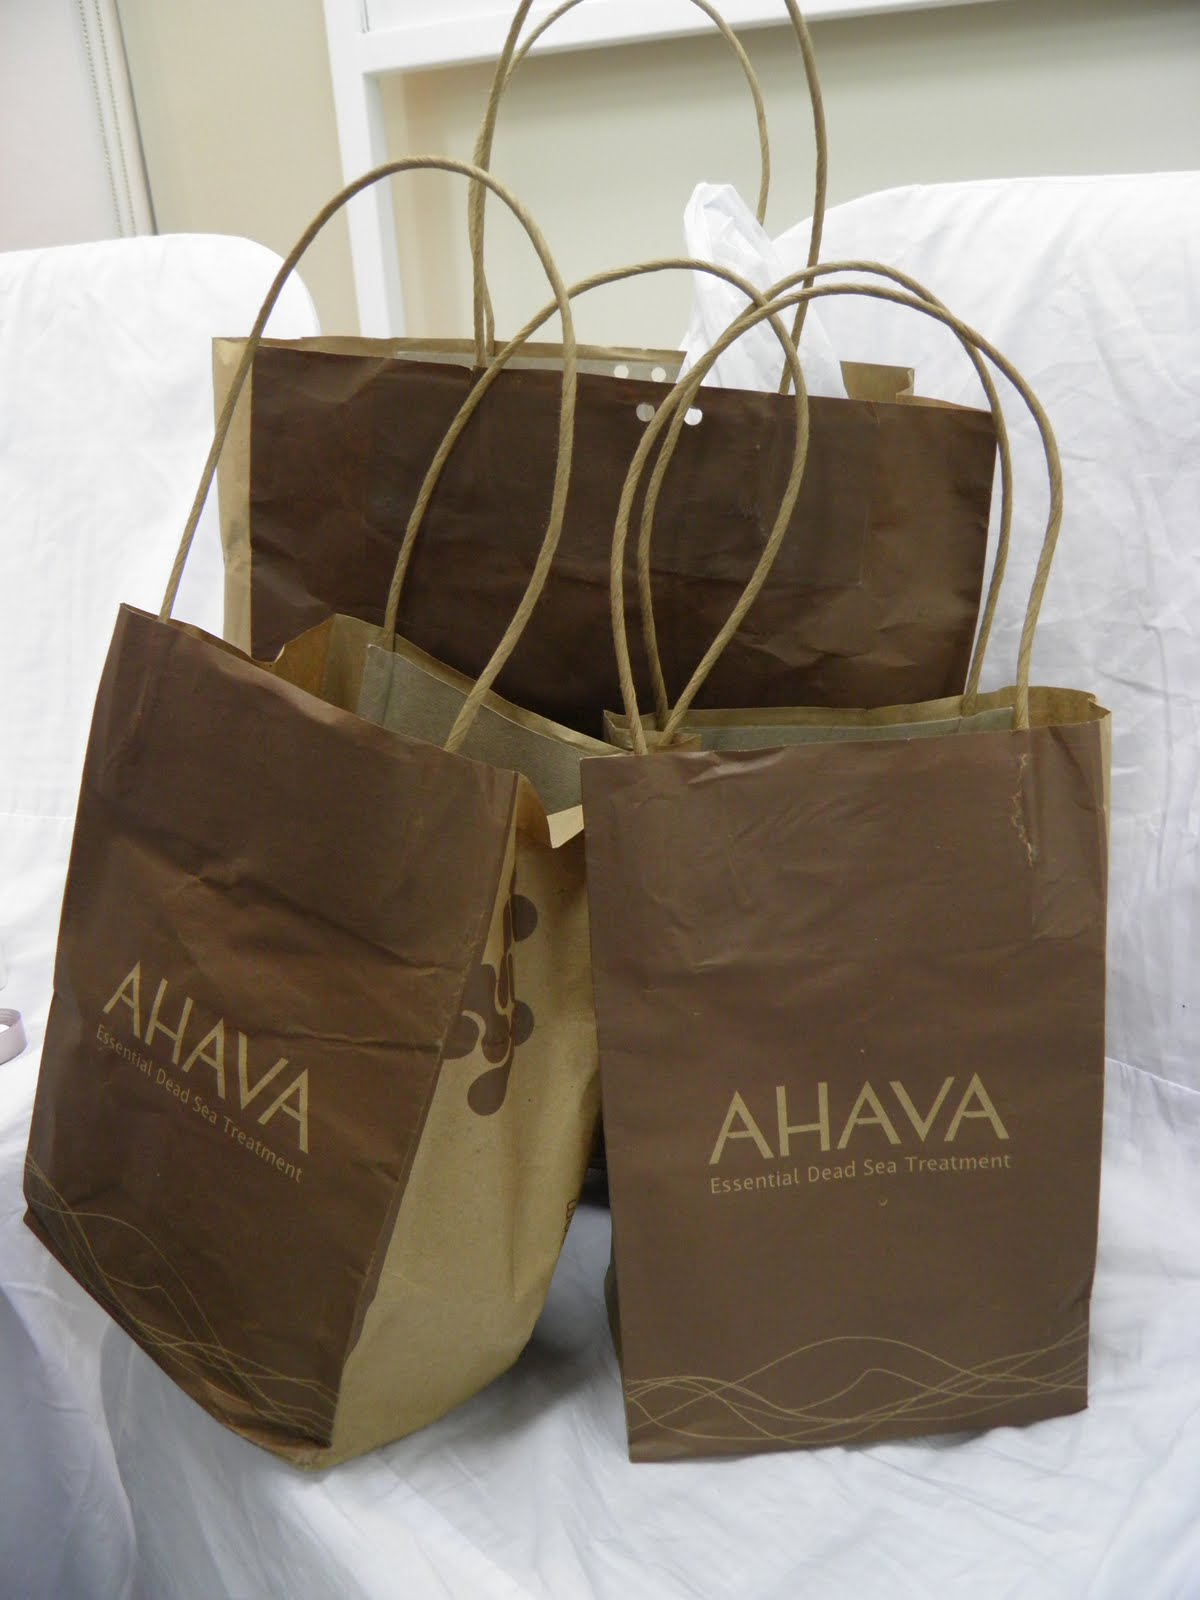 You can go to www.ahava.com.au